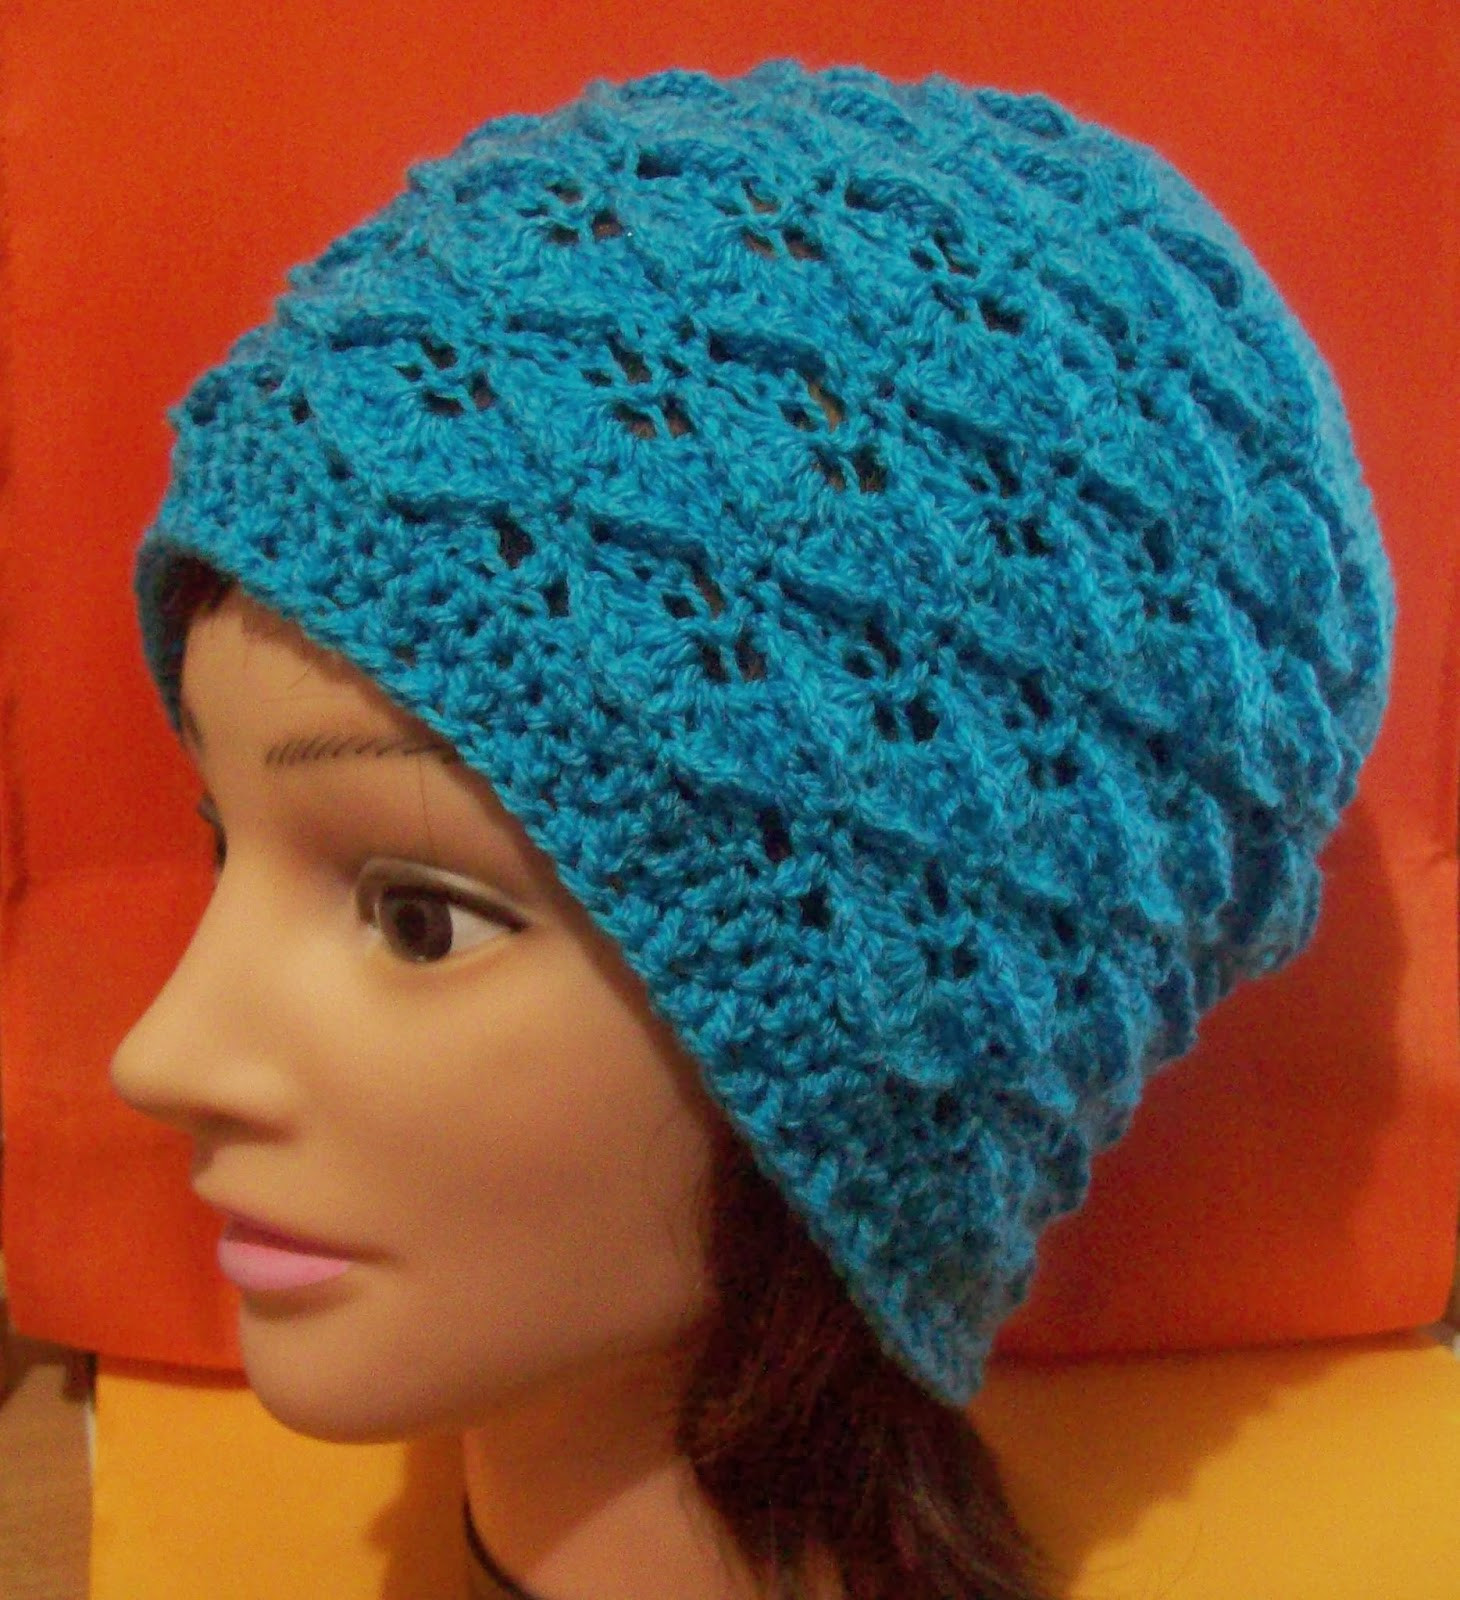 Best Of Crochet Patterns Galore Dragon Scale Hat Crochet Hat Patterns for Adults Of Marvelous 47 Ideas Crochet Hat Patterns for Adults